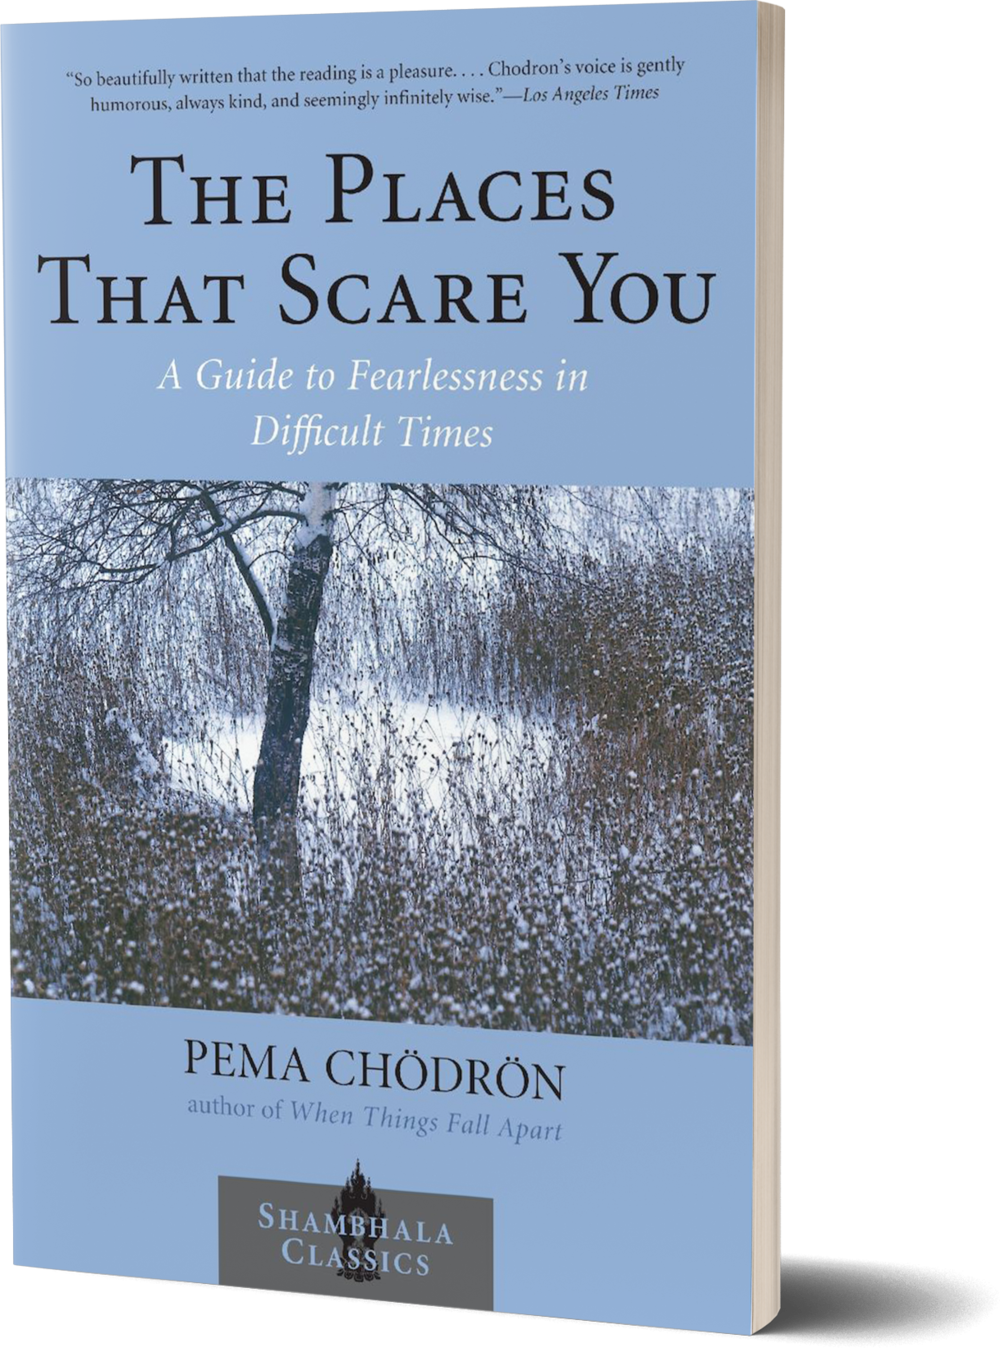 The Places that Scare You- A Guide to Fearlessness in Difficult Times by Pema Chodron.png